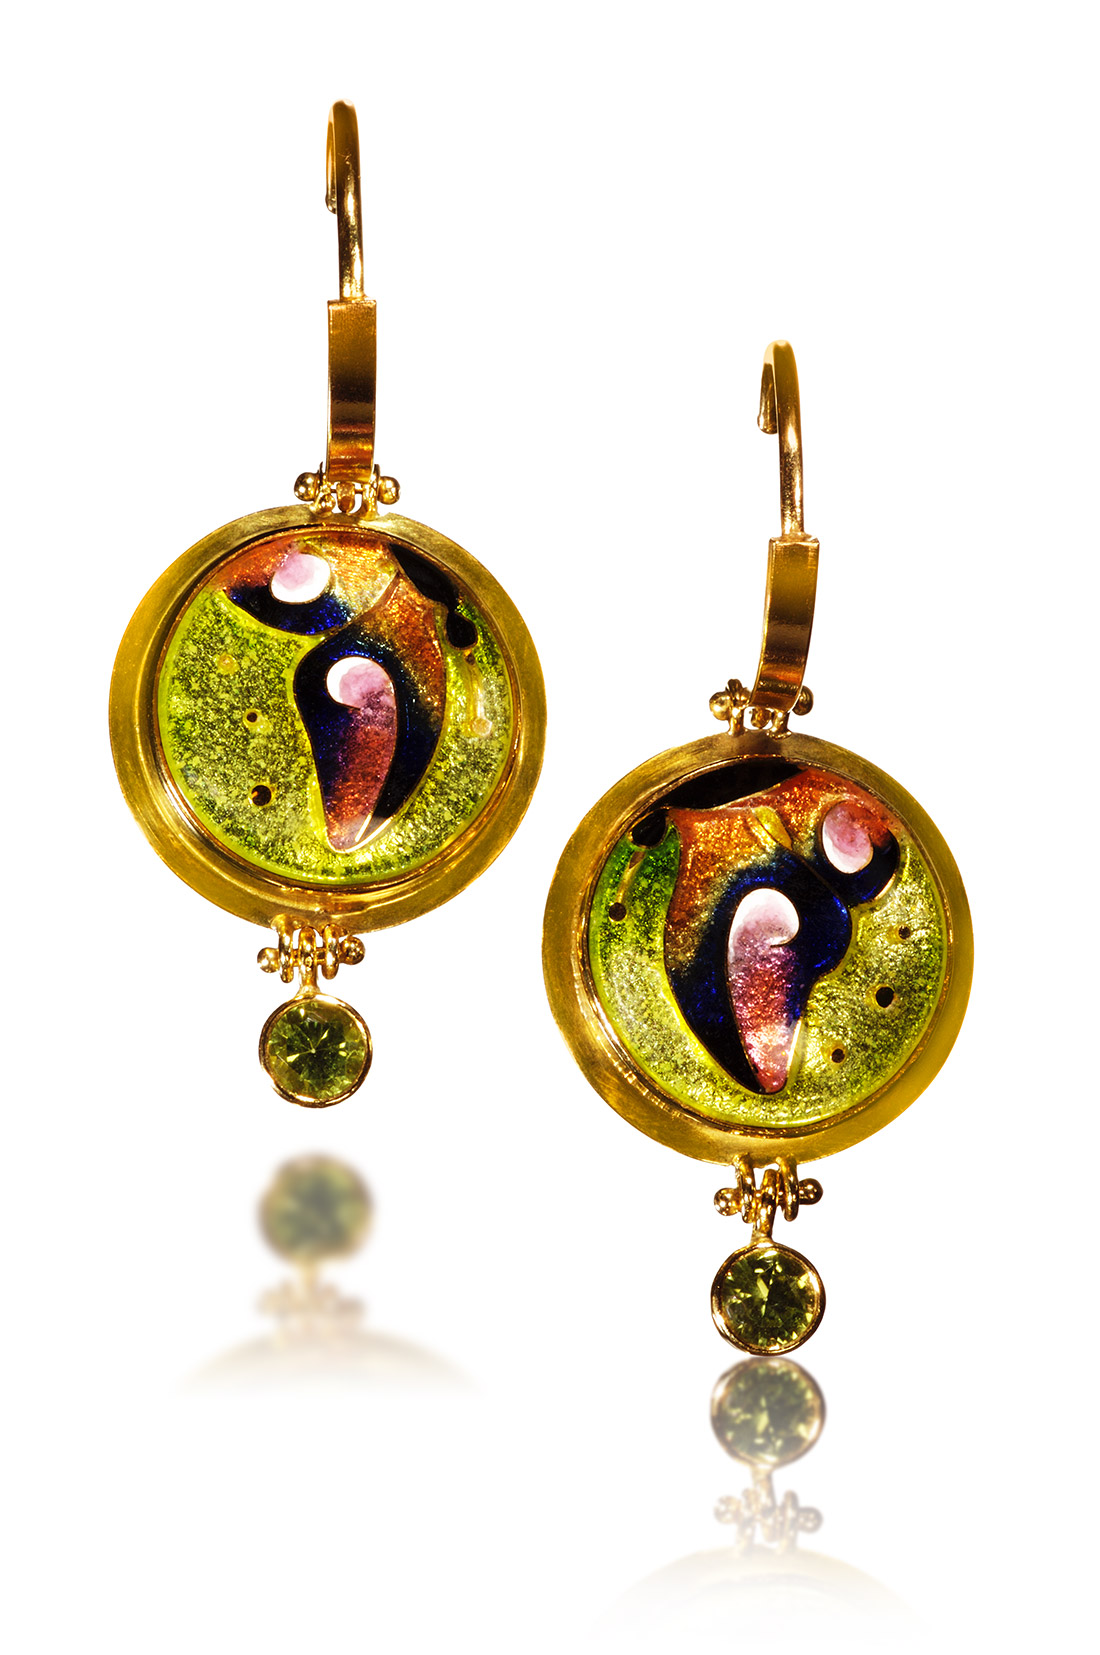 Cloisonne Jewelry | Soleil Earrings | Enamel Jewelry by Patsy Croft